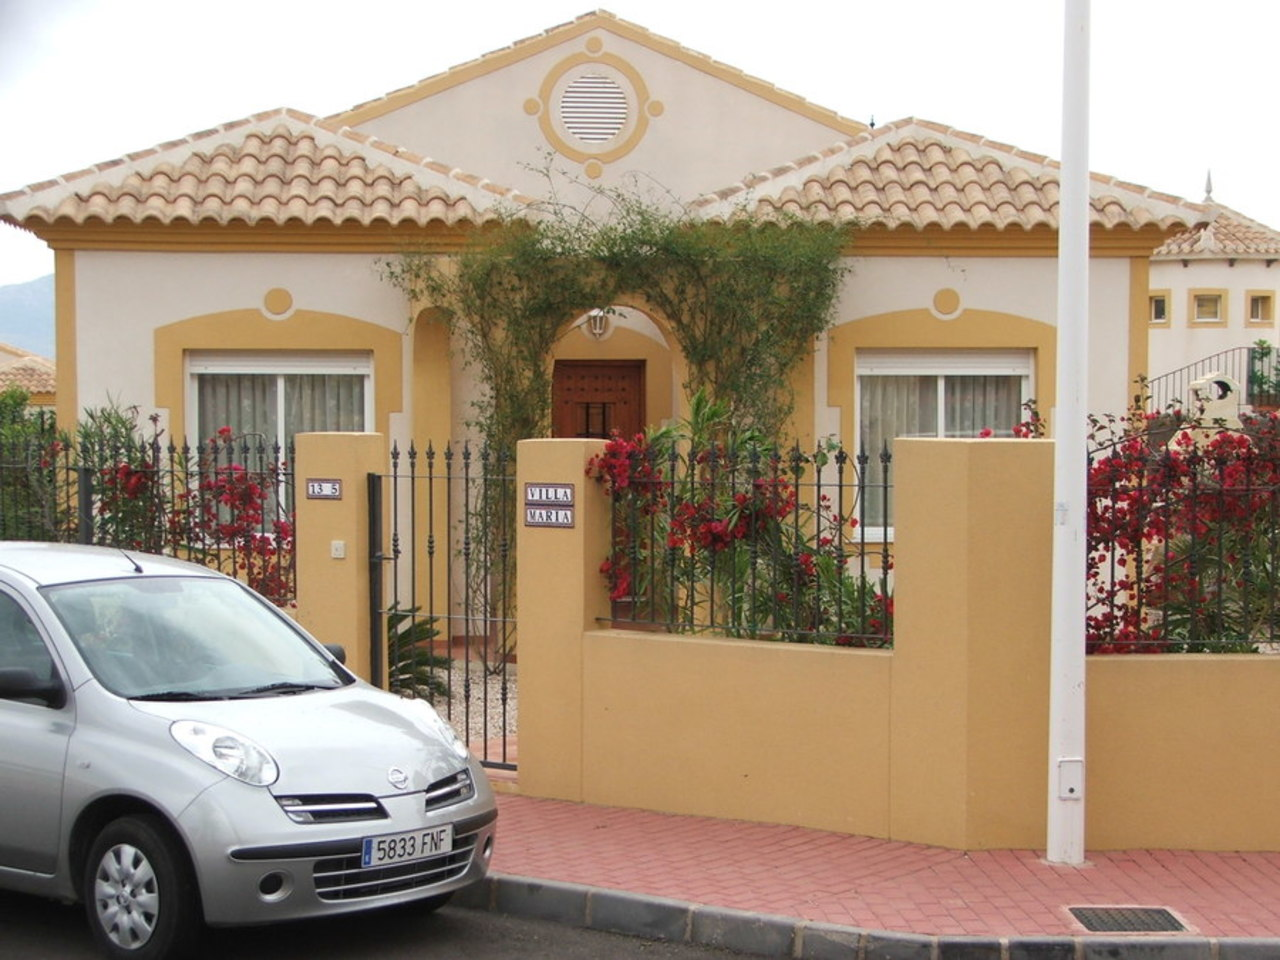 2 Bed Villa For Sale in Mazarron Country Club Mazarron Murcia Spain